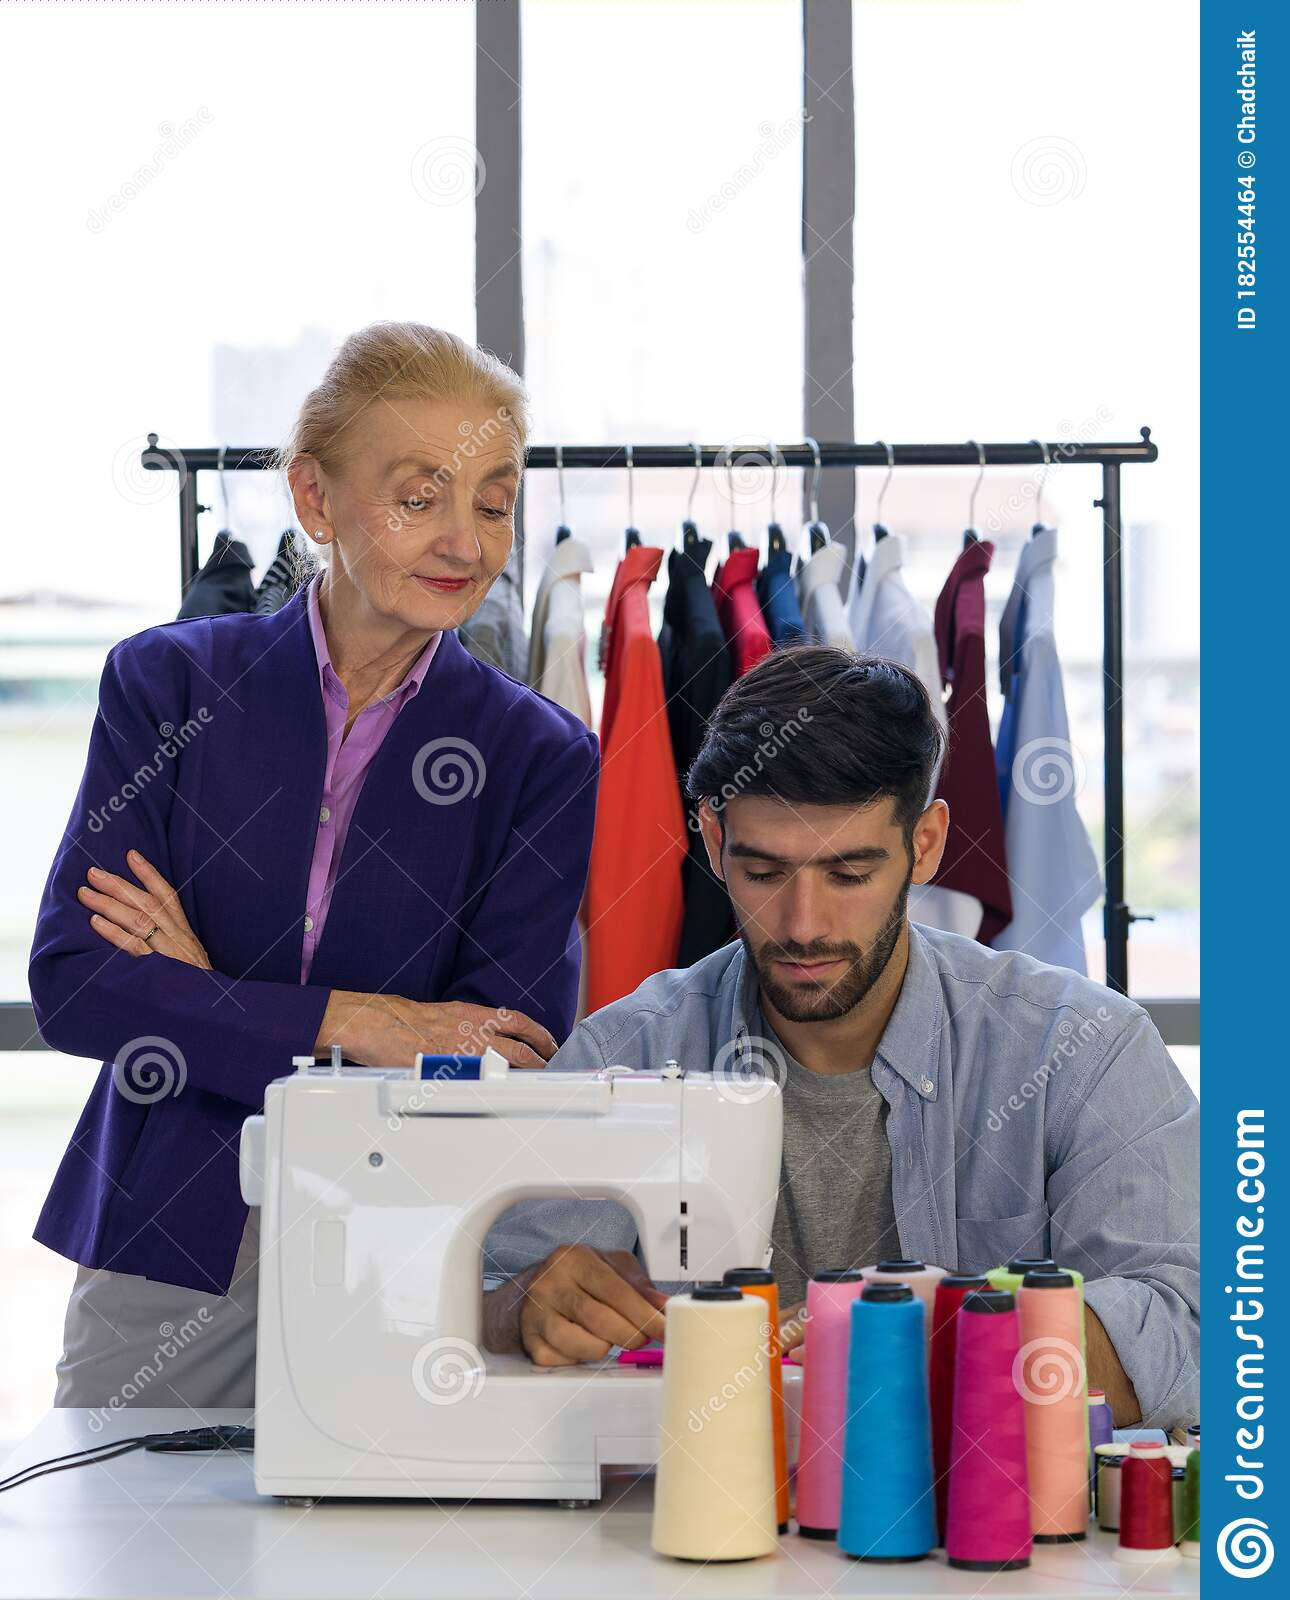 Senior Fashion Designers Closely Control The New Designers In Their Work Stock Photo Image Of Process Industry 182554464